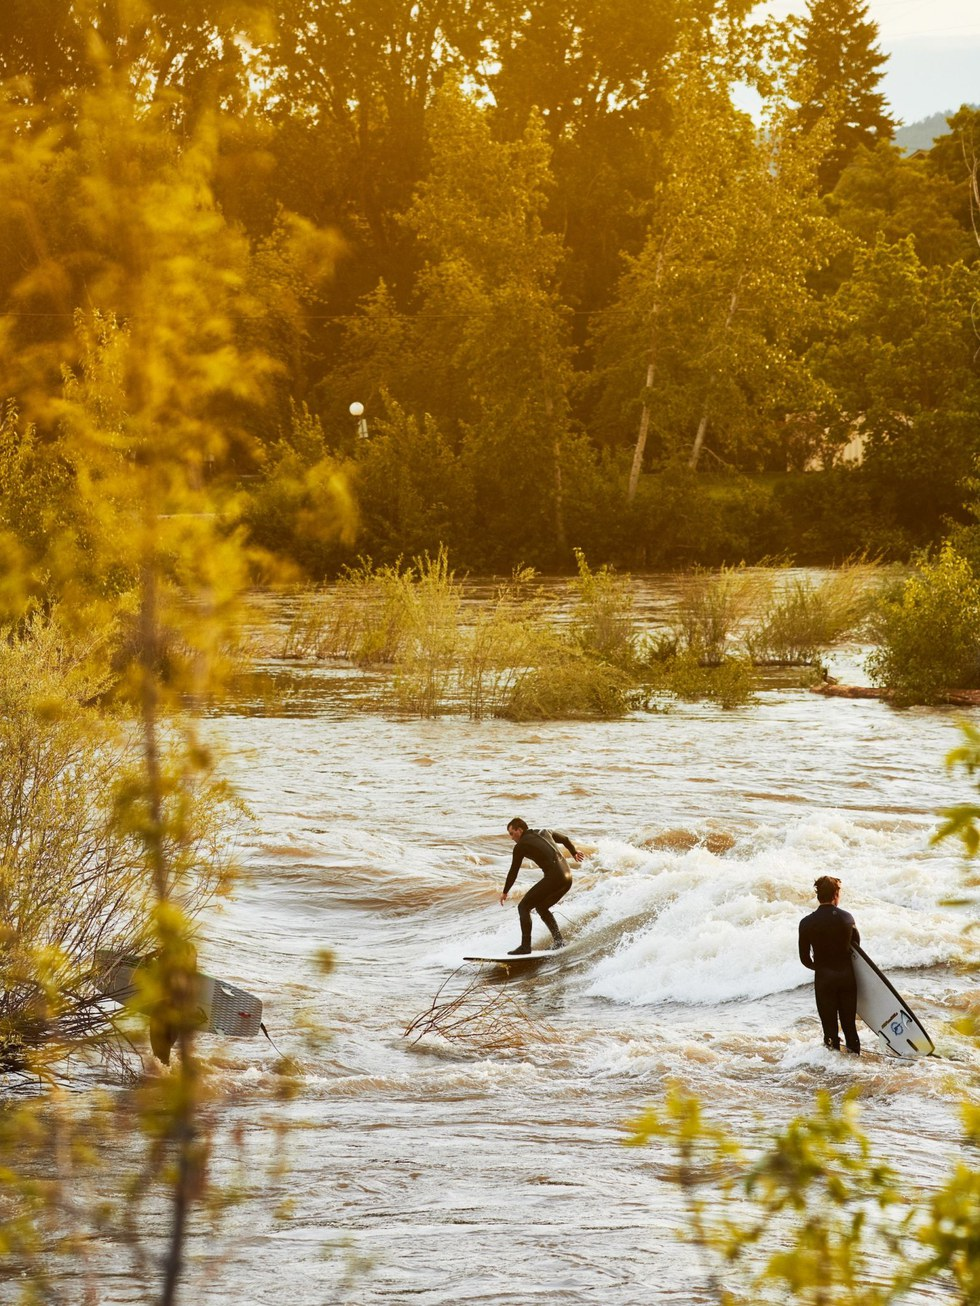 Surfers on the rushing Clark Fork River